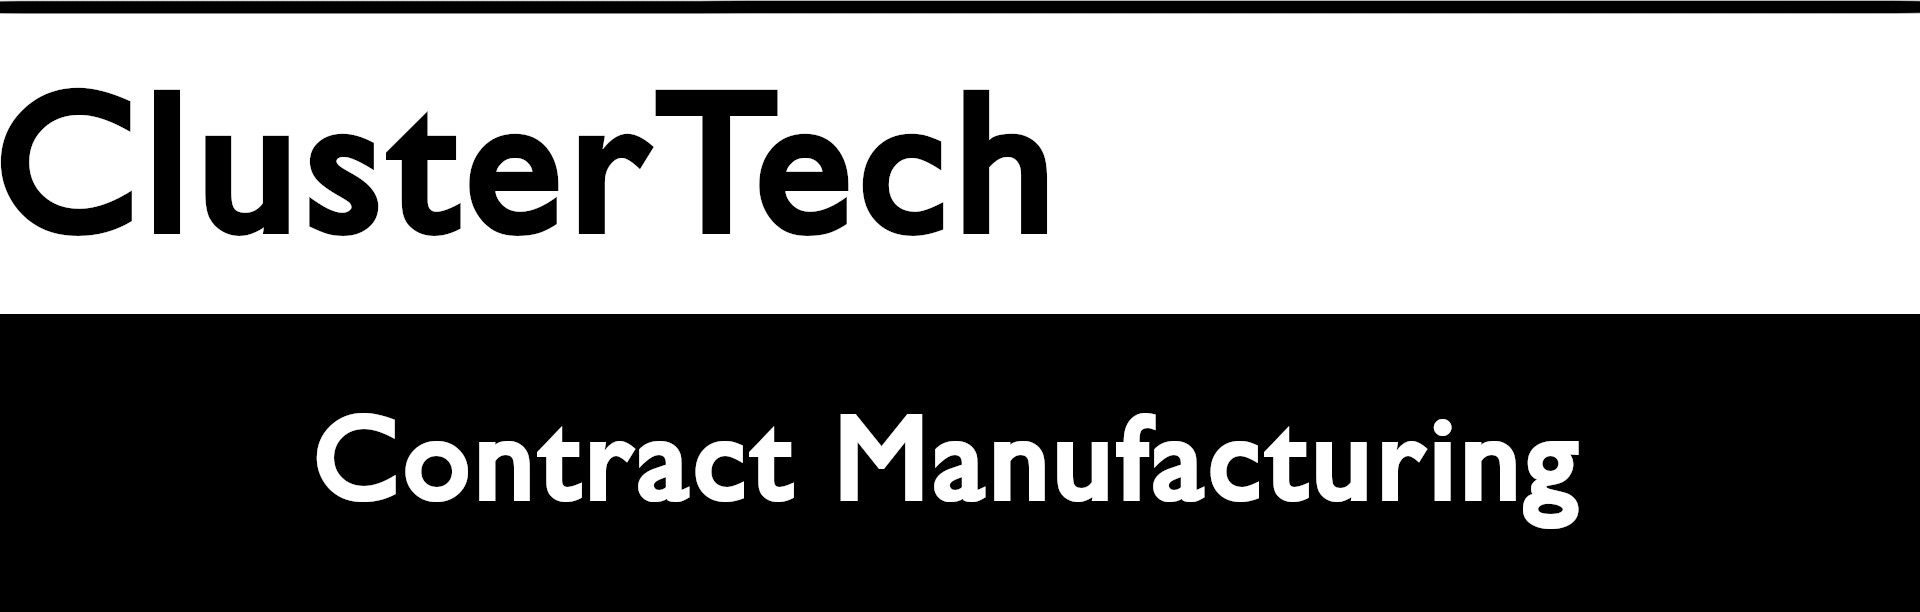 CTI Contract Manufacturing